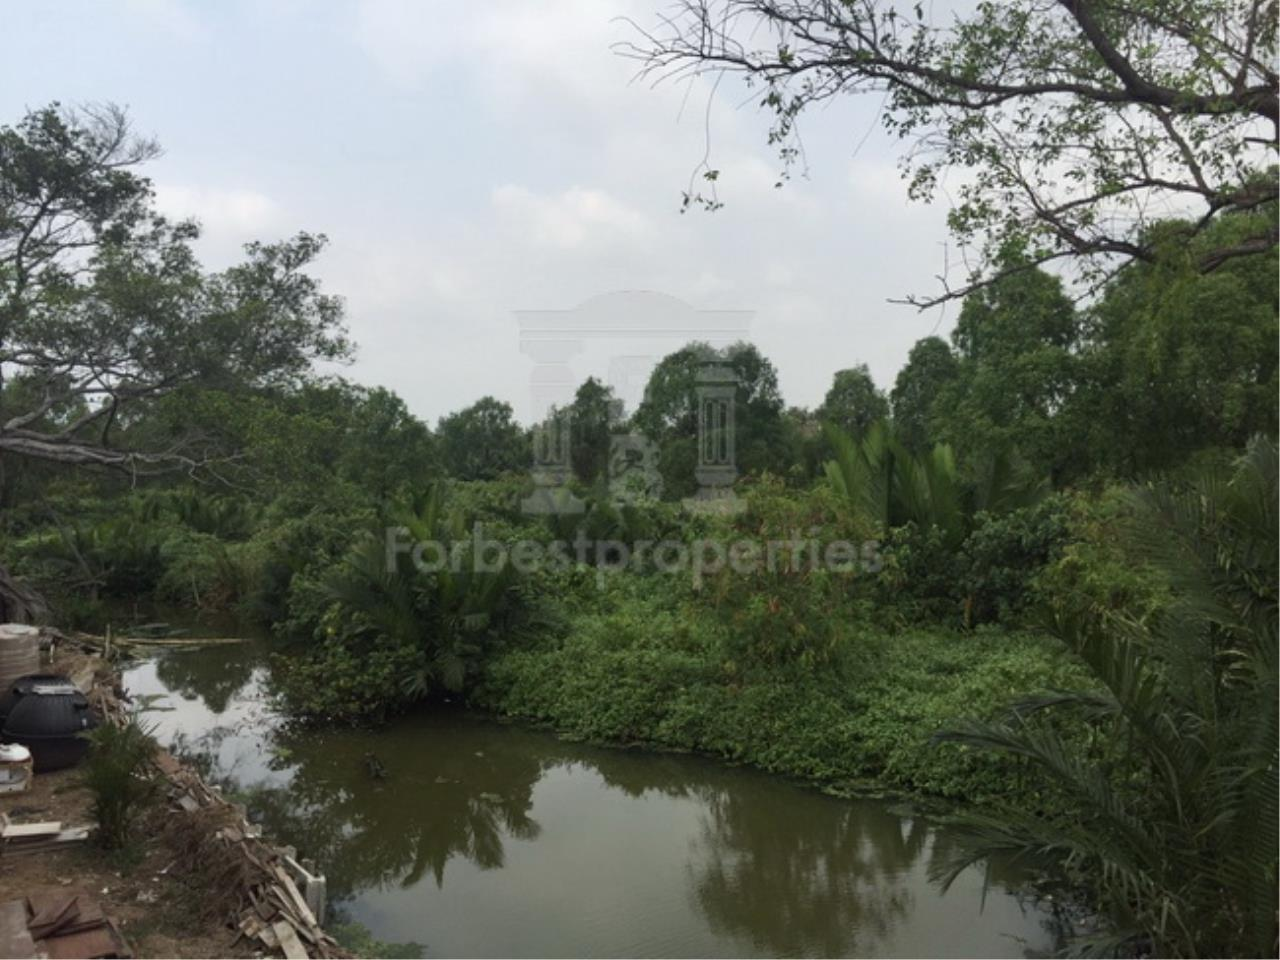 Forbest Properties Agency's 35941-Land For Sale, on Phetchahung Rd., land size 43 rai 11